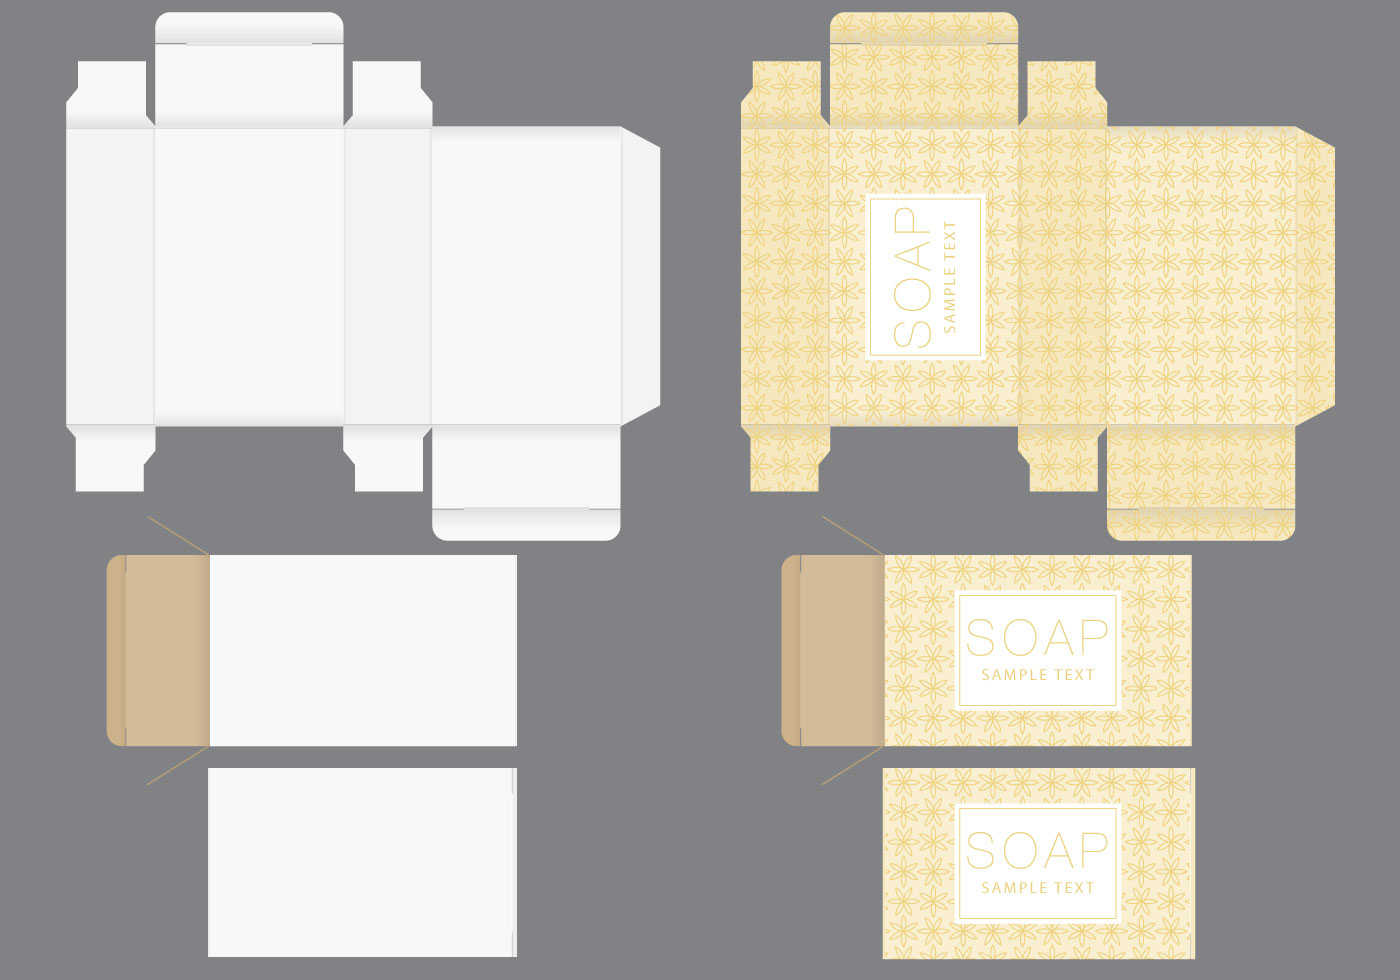 Soap box template download free vector art stock for Soap box design template